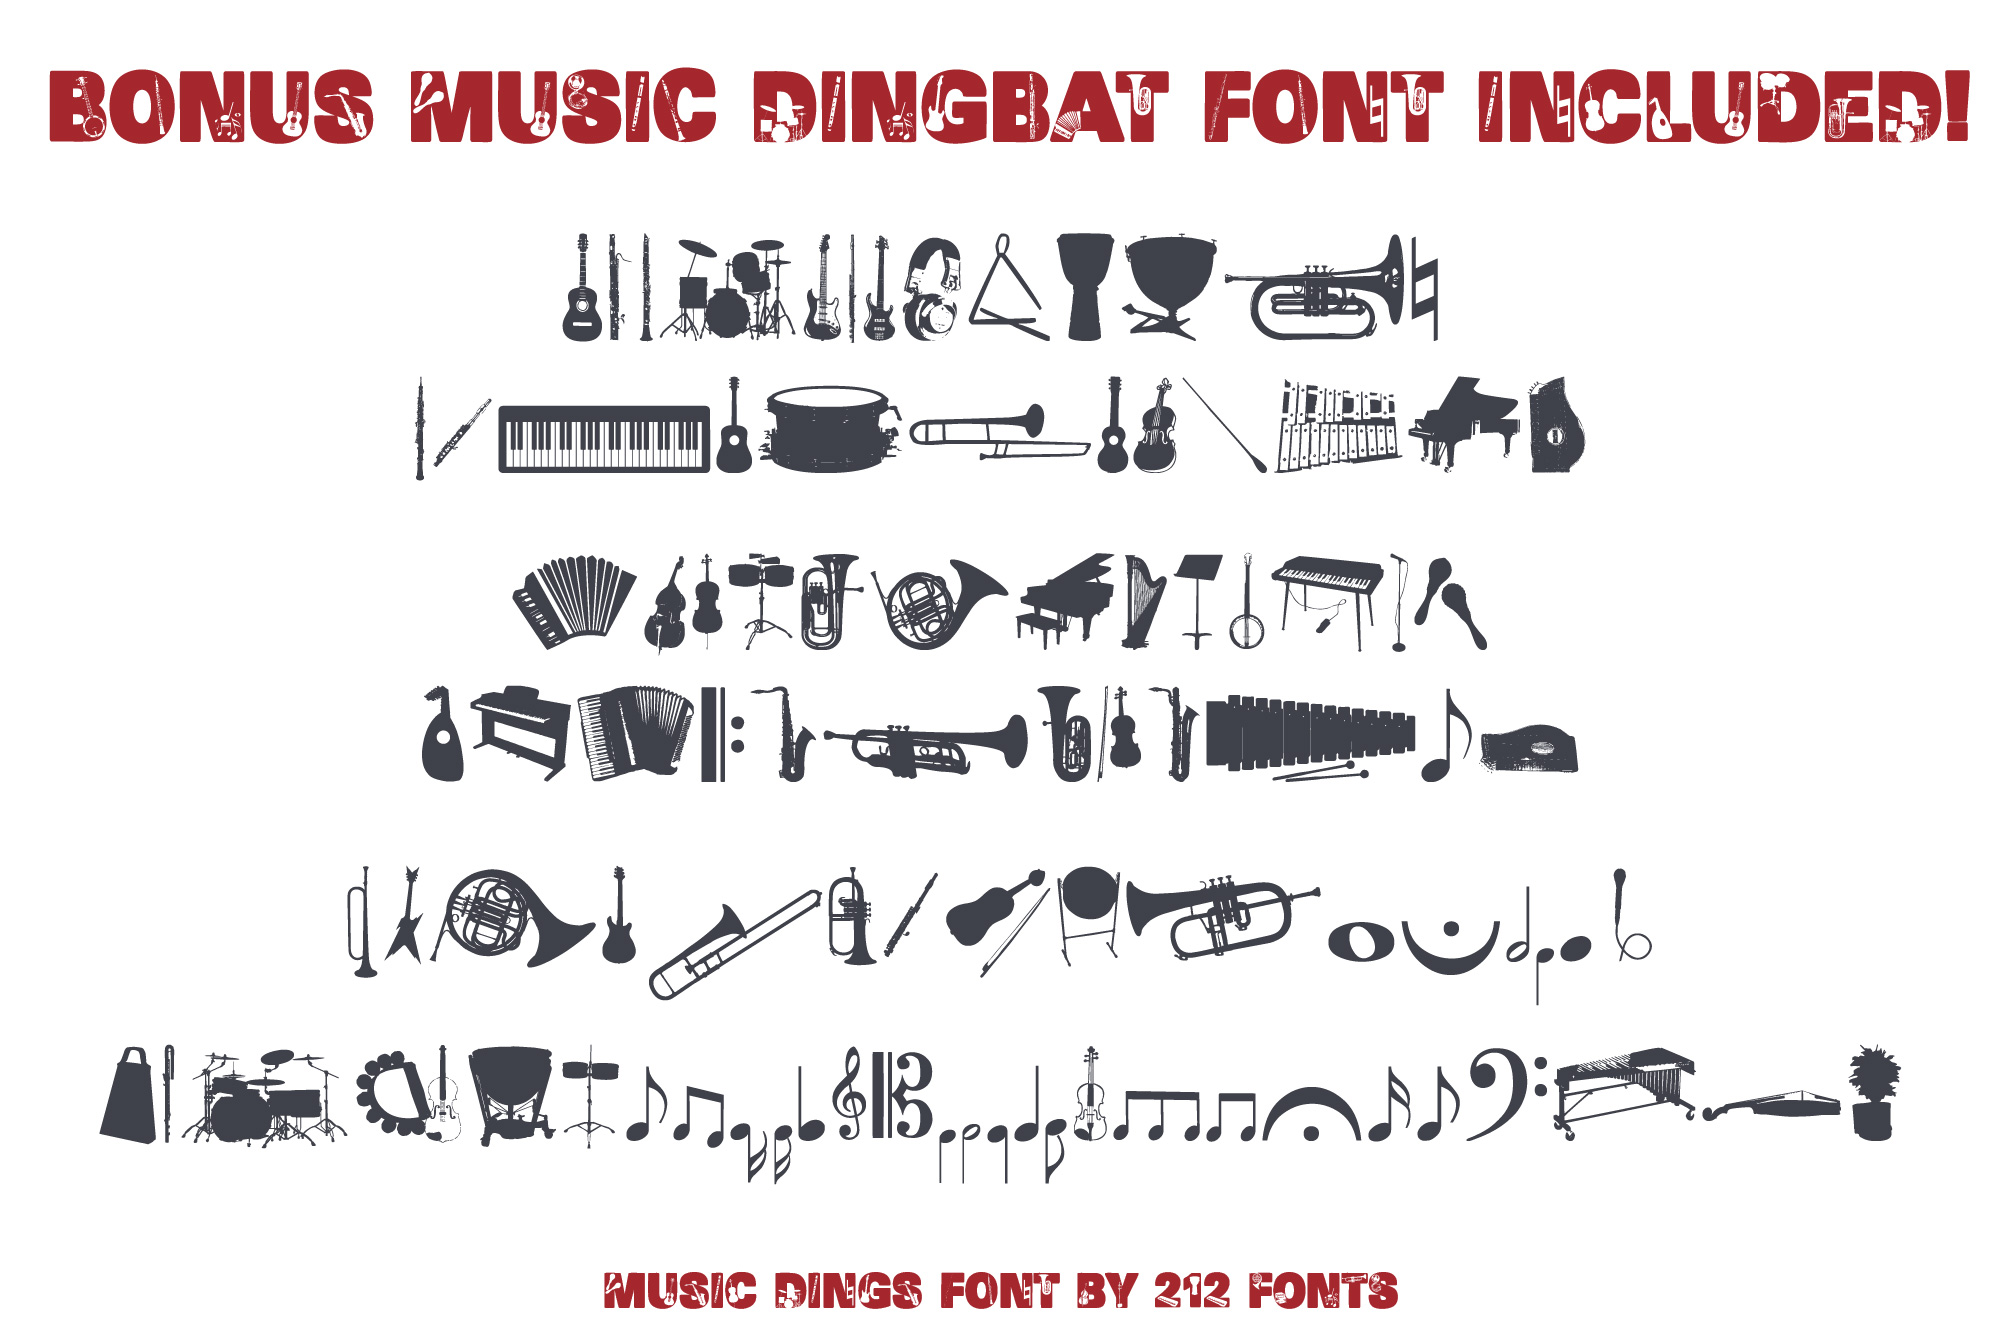 212 Music Caps Display Font Instruments Notes Alphabet OTF example image 5